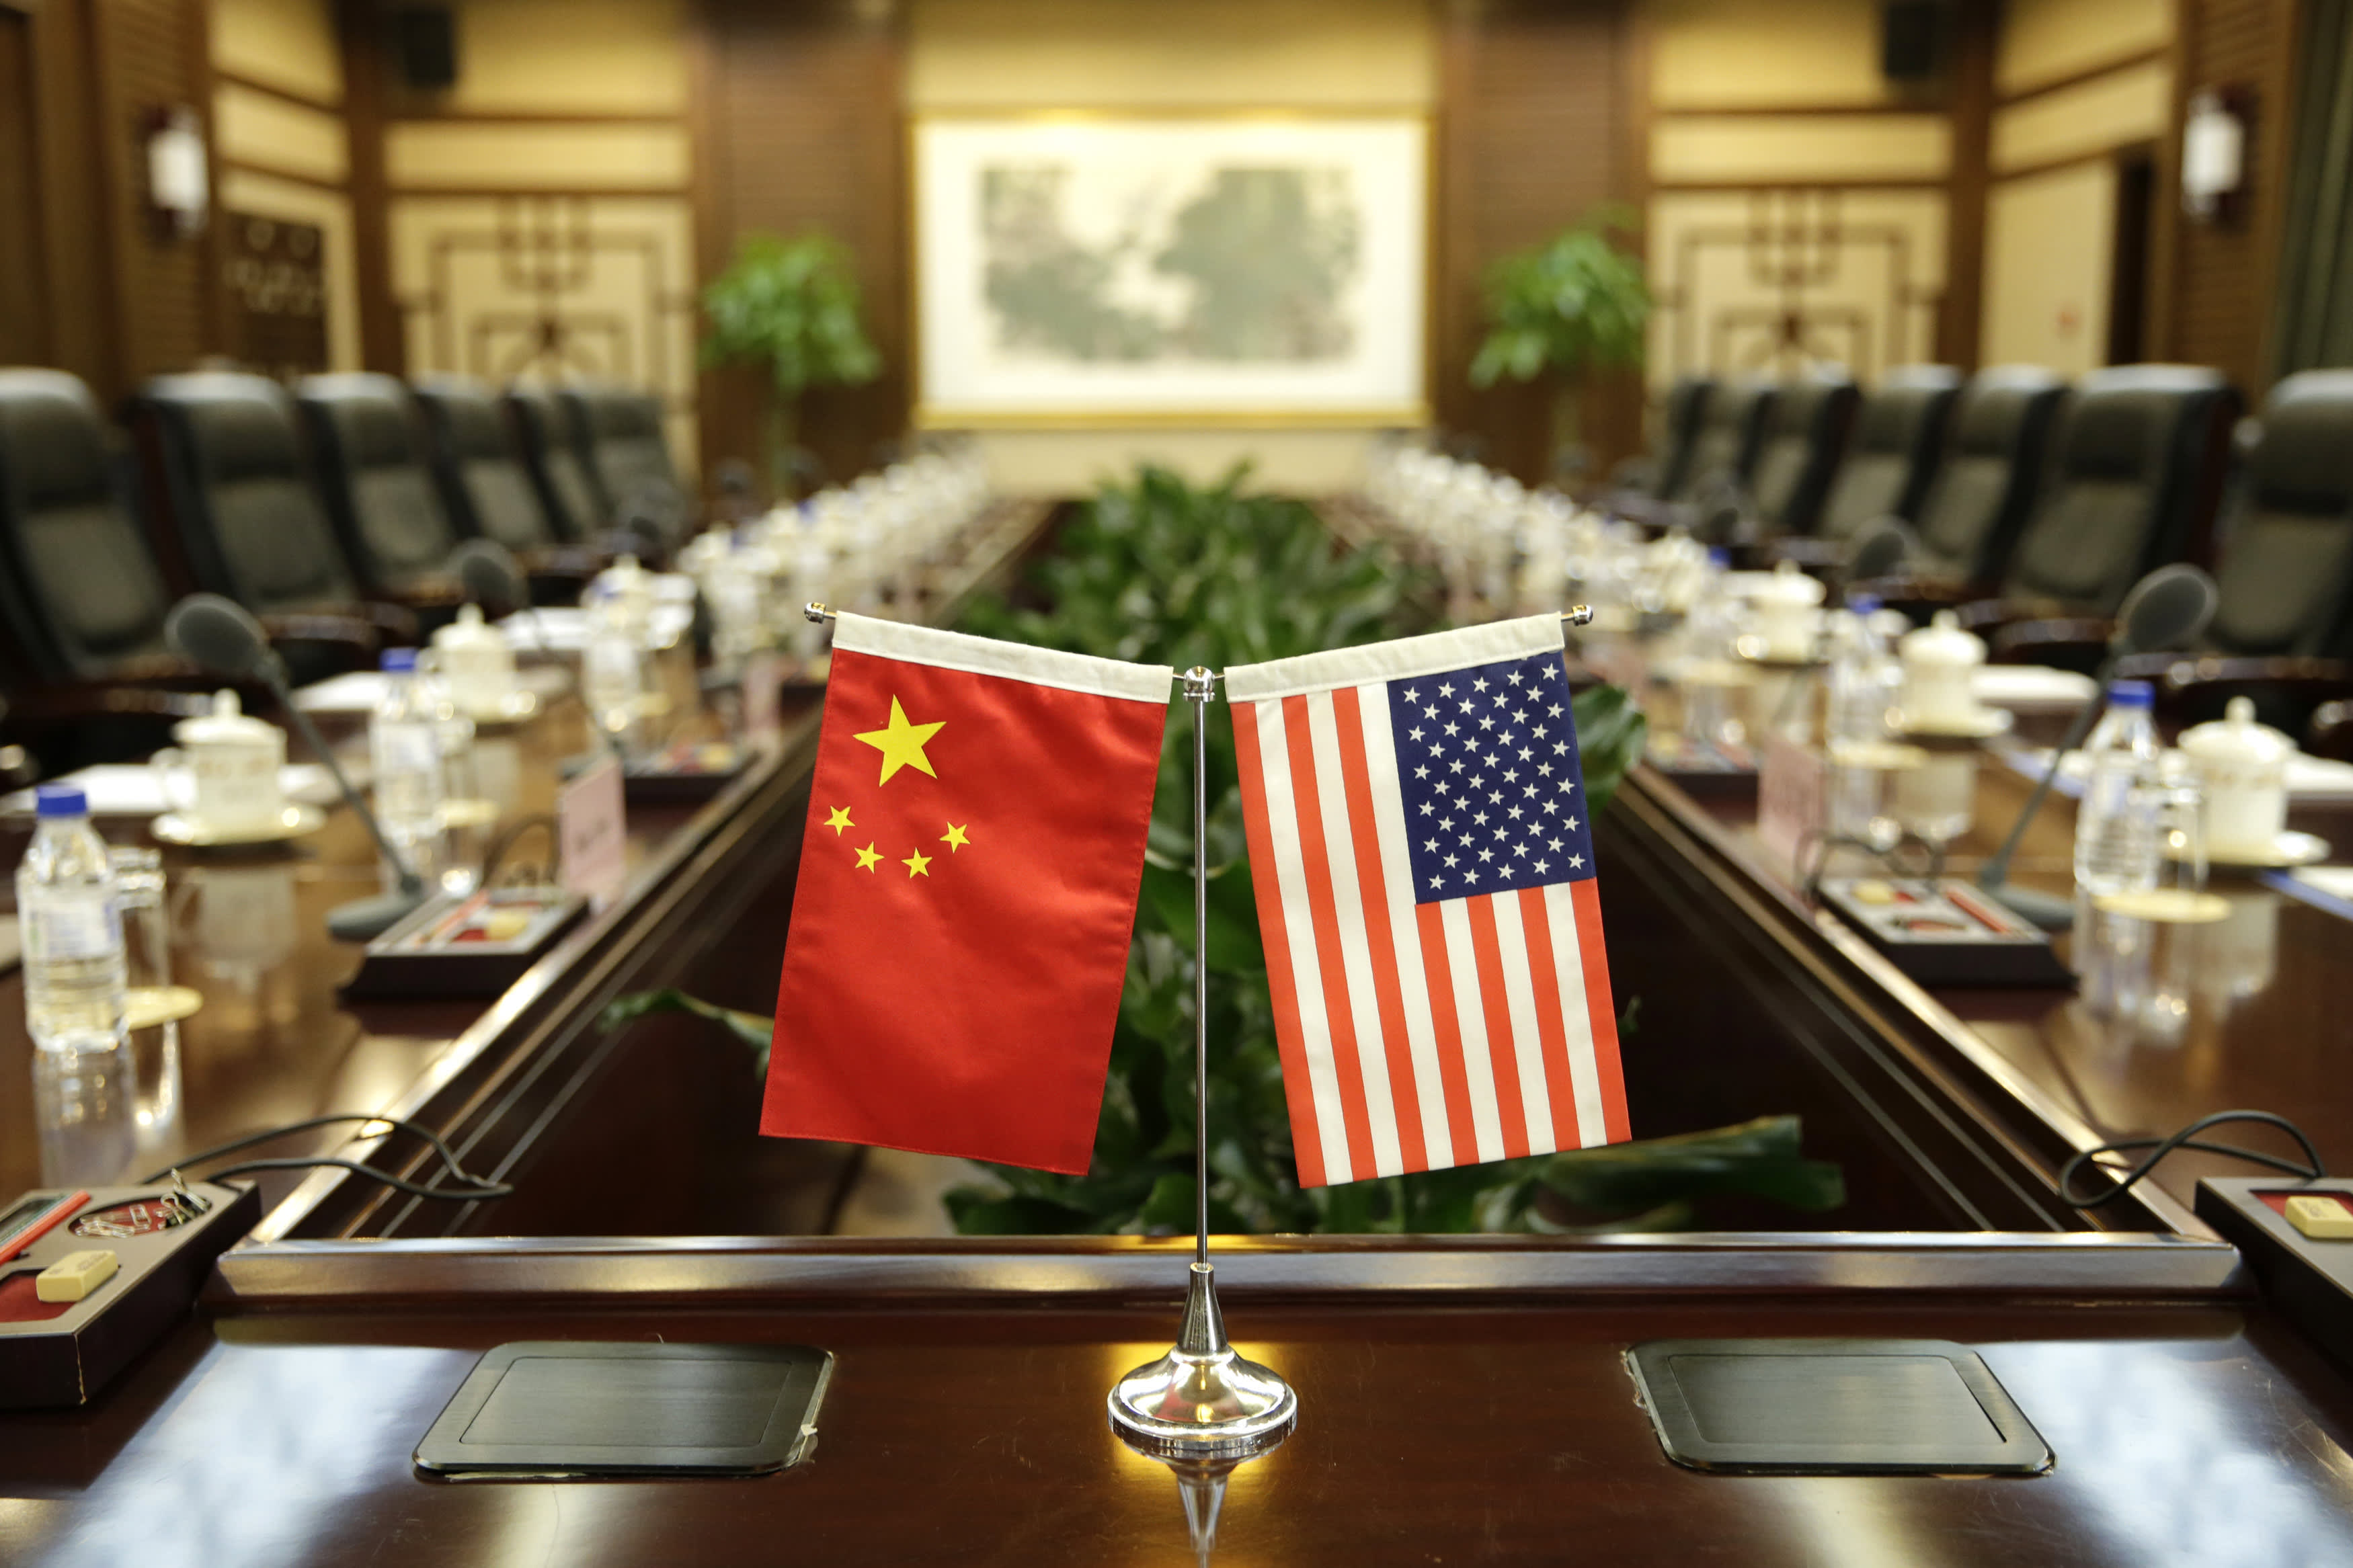 Beijing doesn't want the U.S. to form an 'anti-China coalition' in the post-Trump era, consultancy says